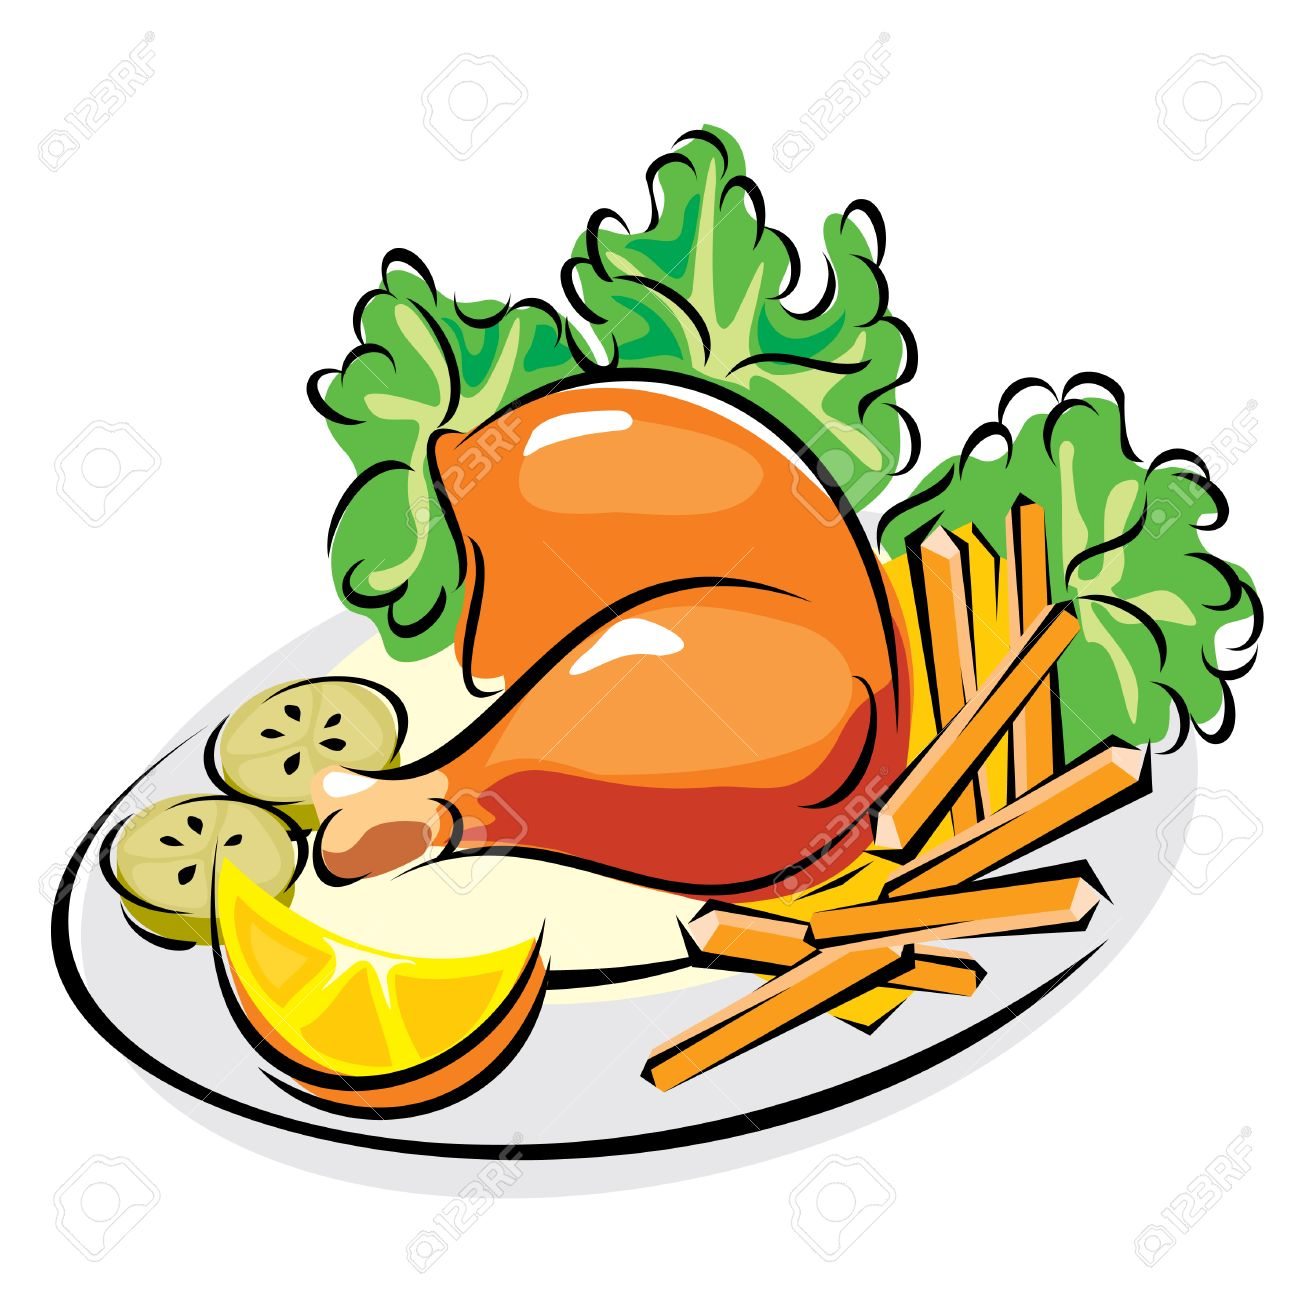 images of roast chicken leg with fried potatoes and vegetables - 8902546